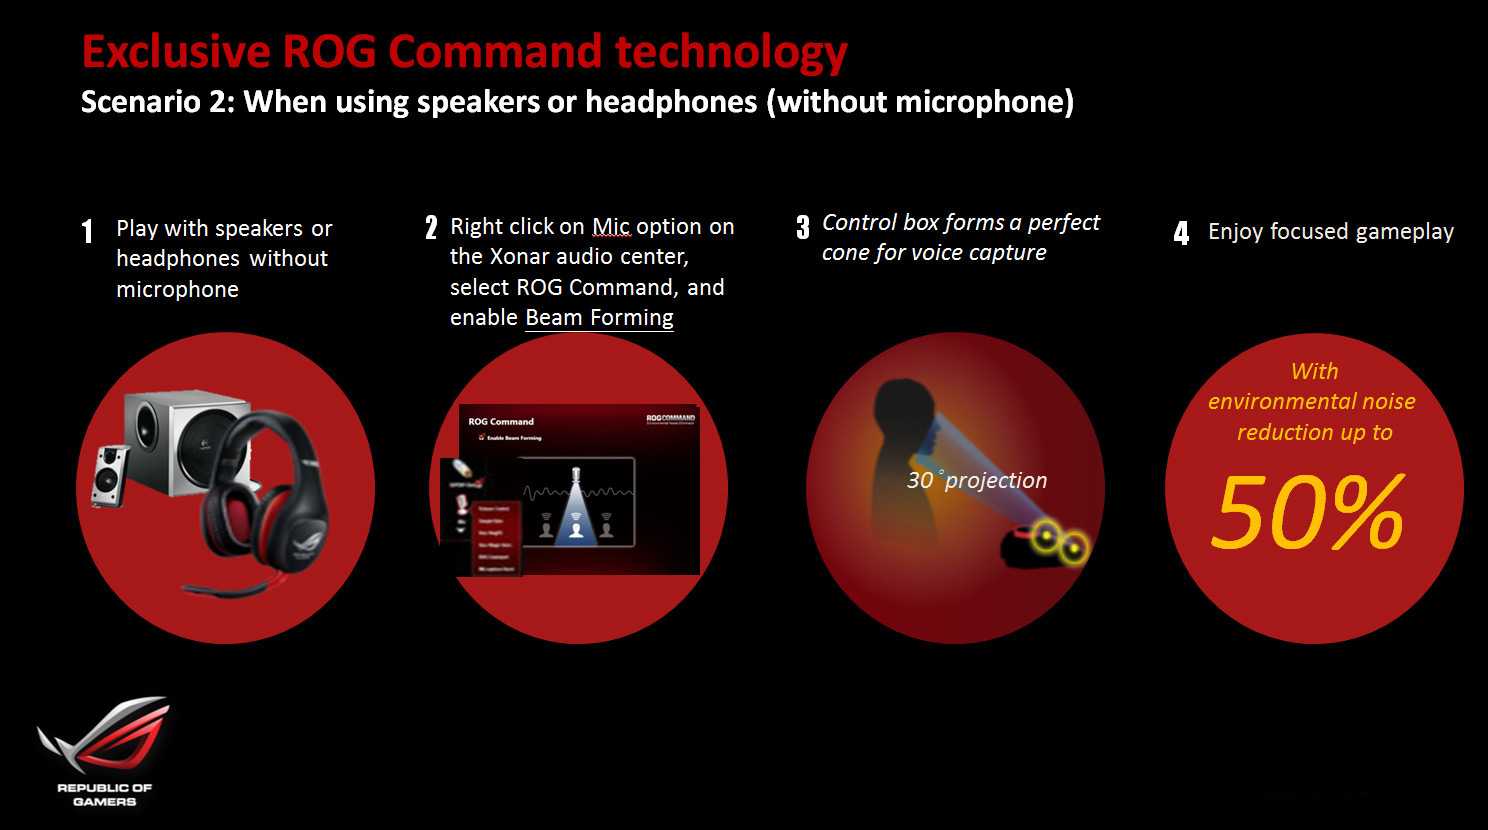 rog-command-technology-2